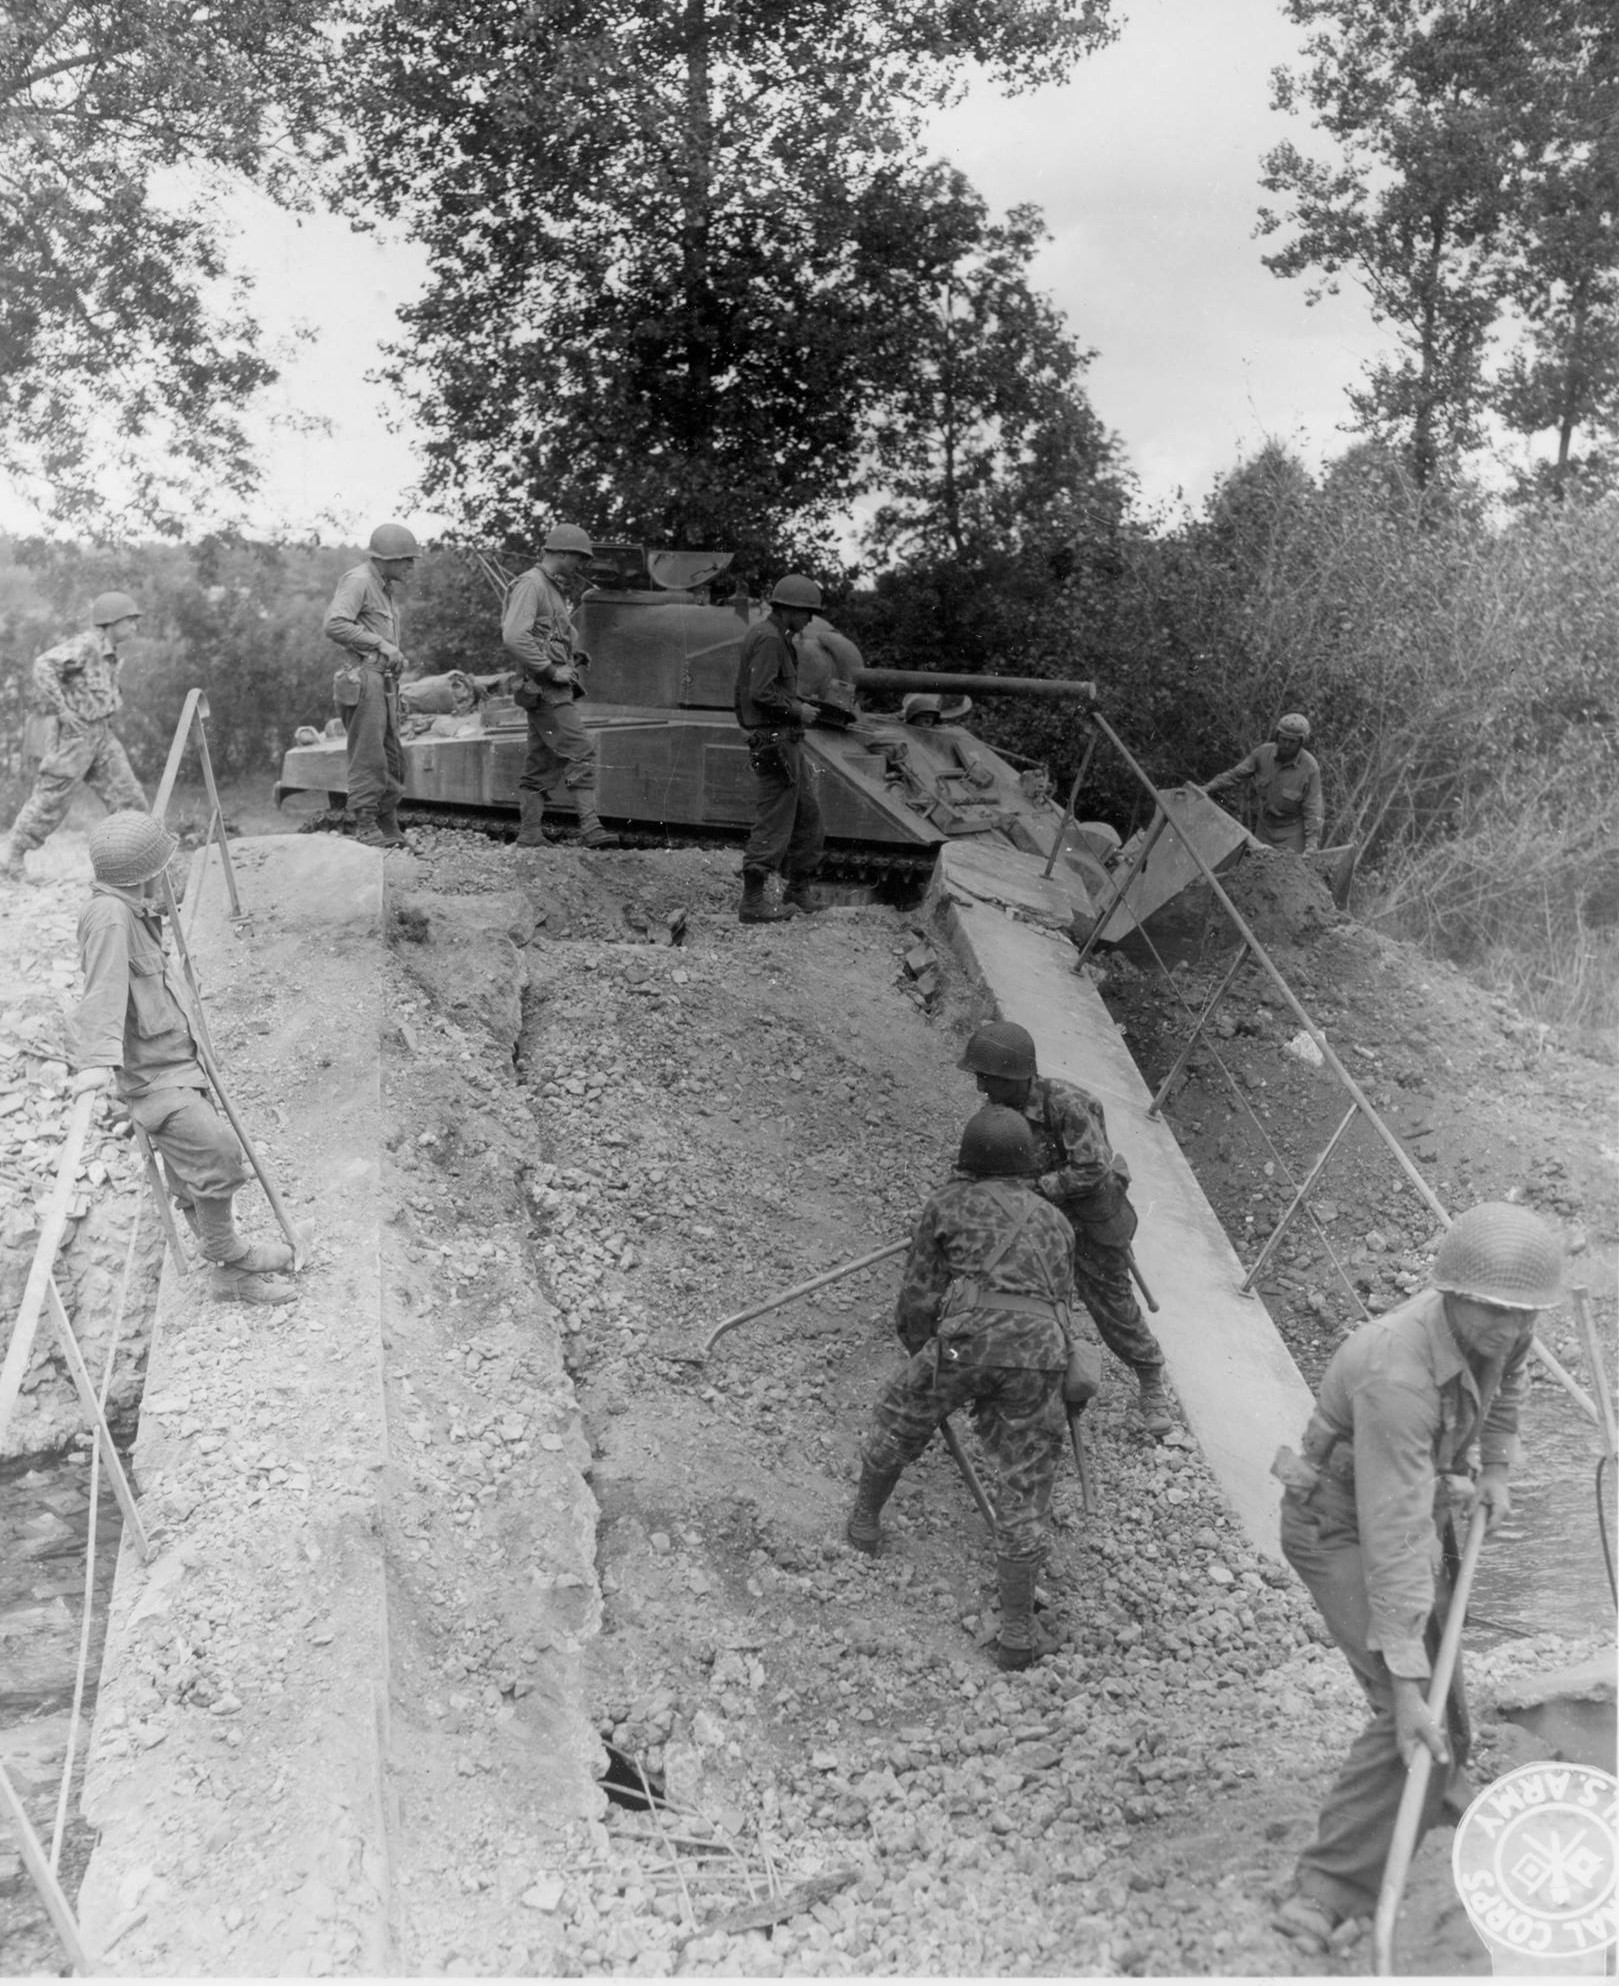 Engineers working on a bridge in France, August 20th 1944